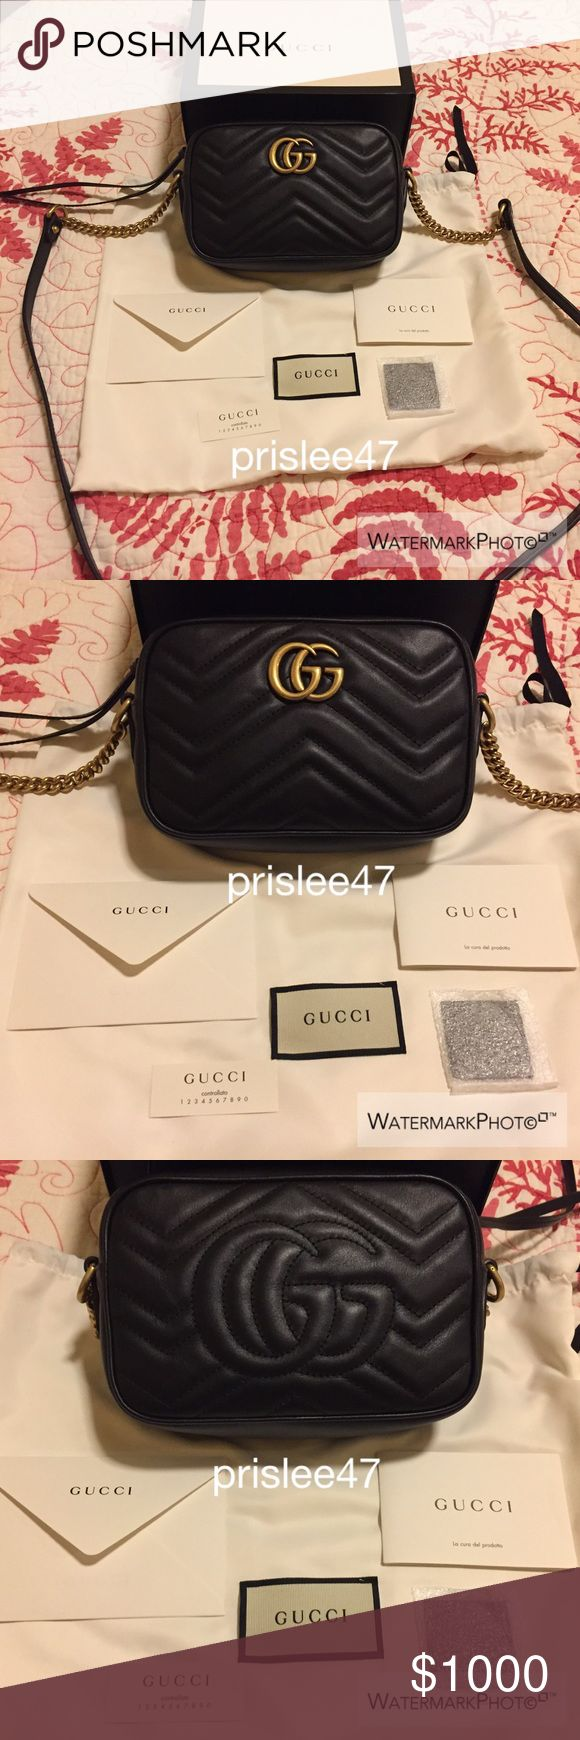 Gucci Marmont Mini in Black More details on Ⓜ️. Let me know if you have any questions :) Gucci Bags Crossbody Bags